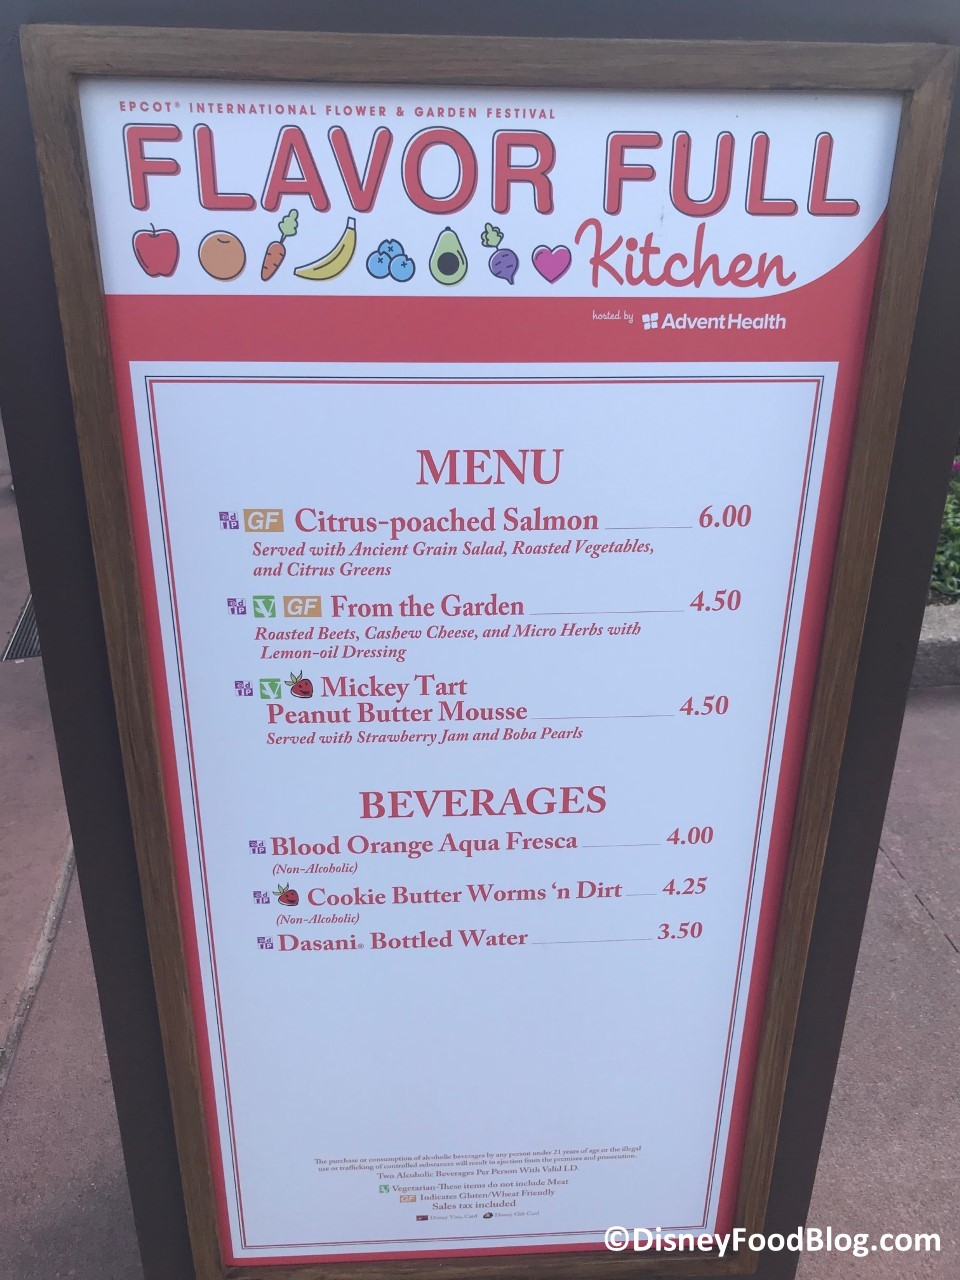 2019 epcot flower and garden festival – flavor full kitchen